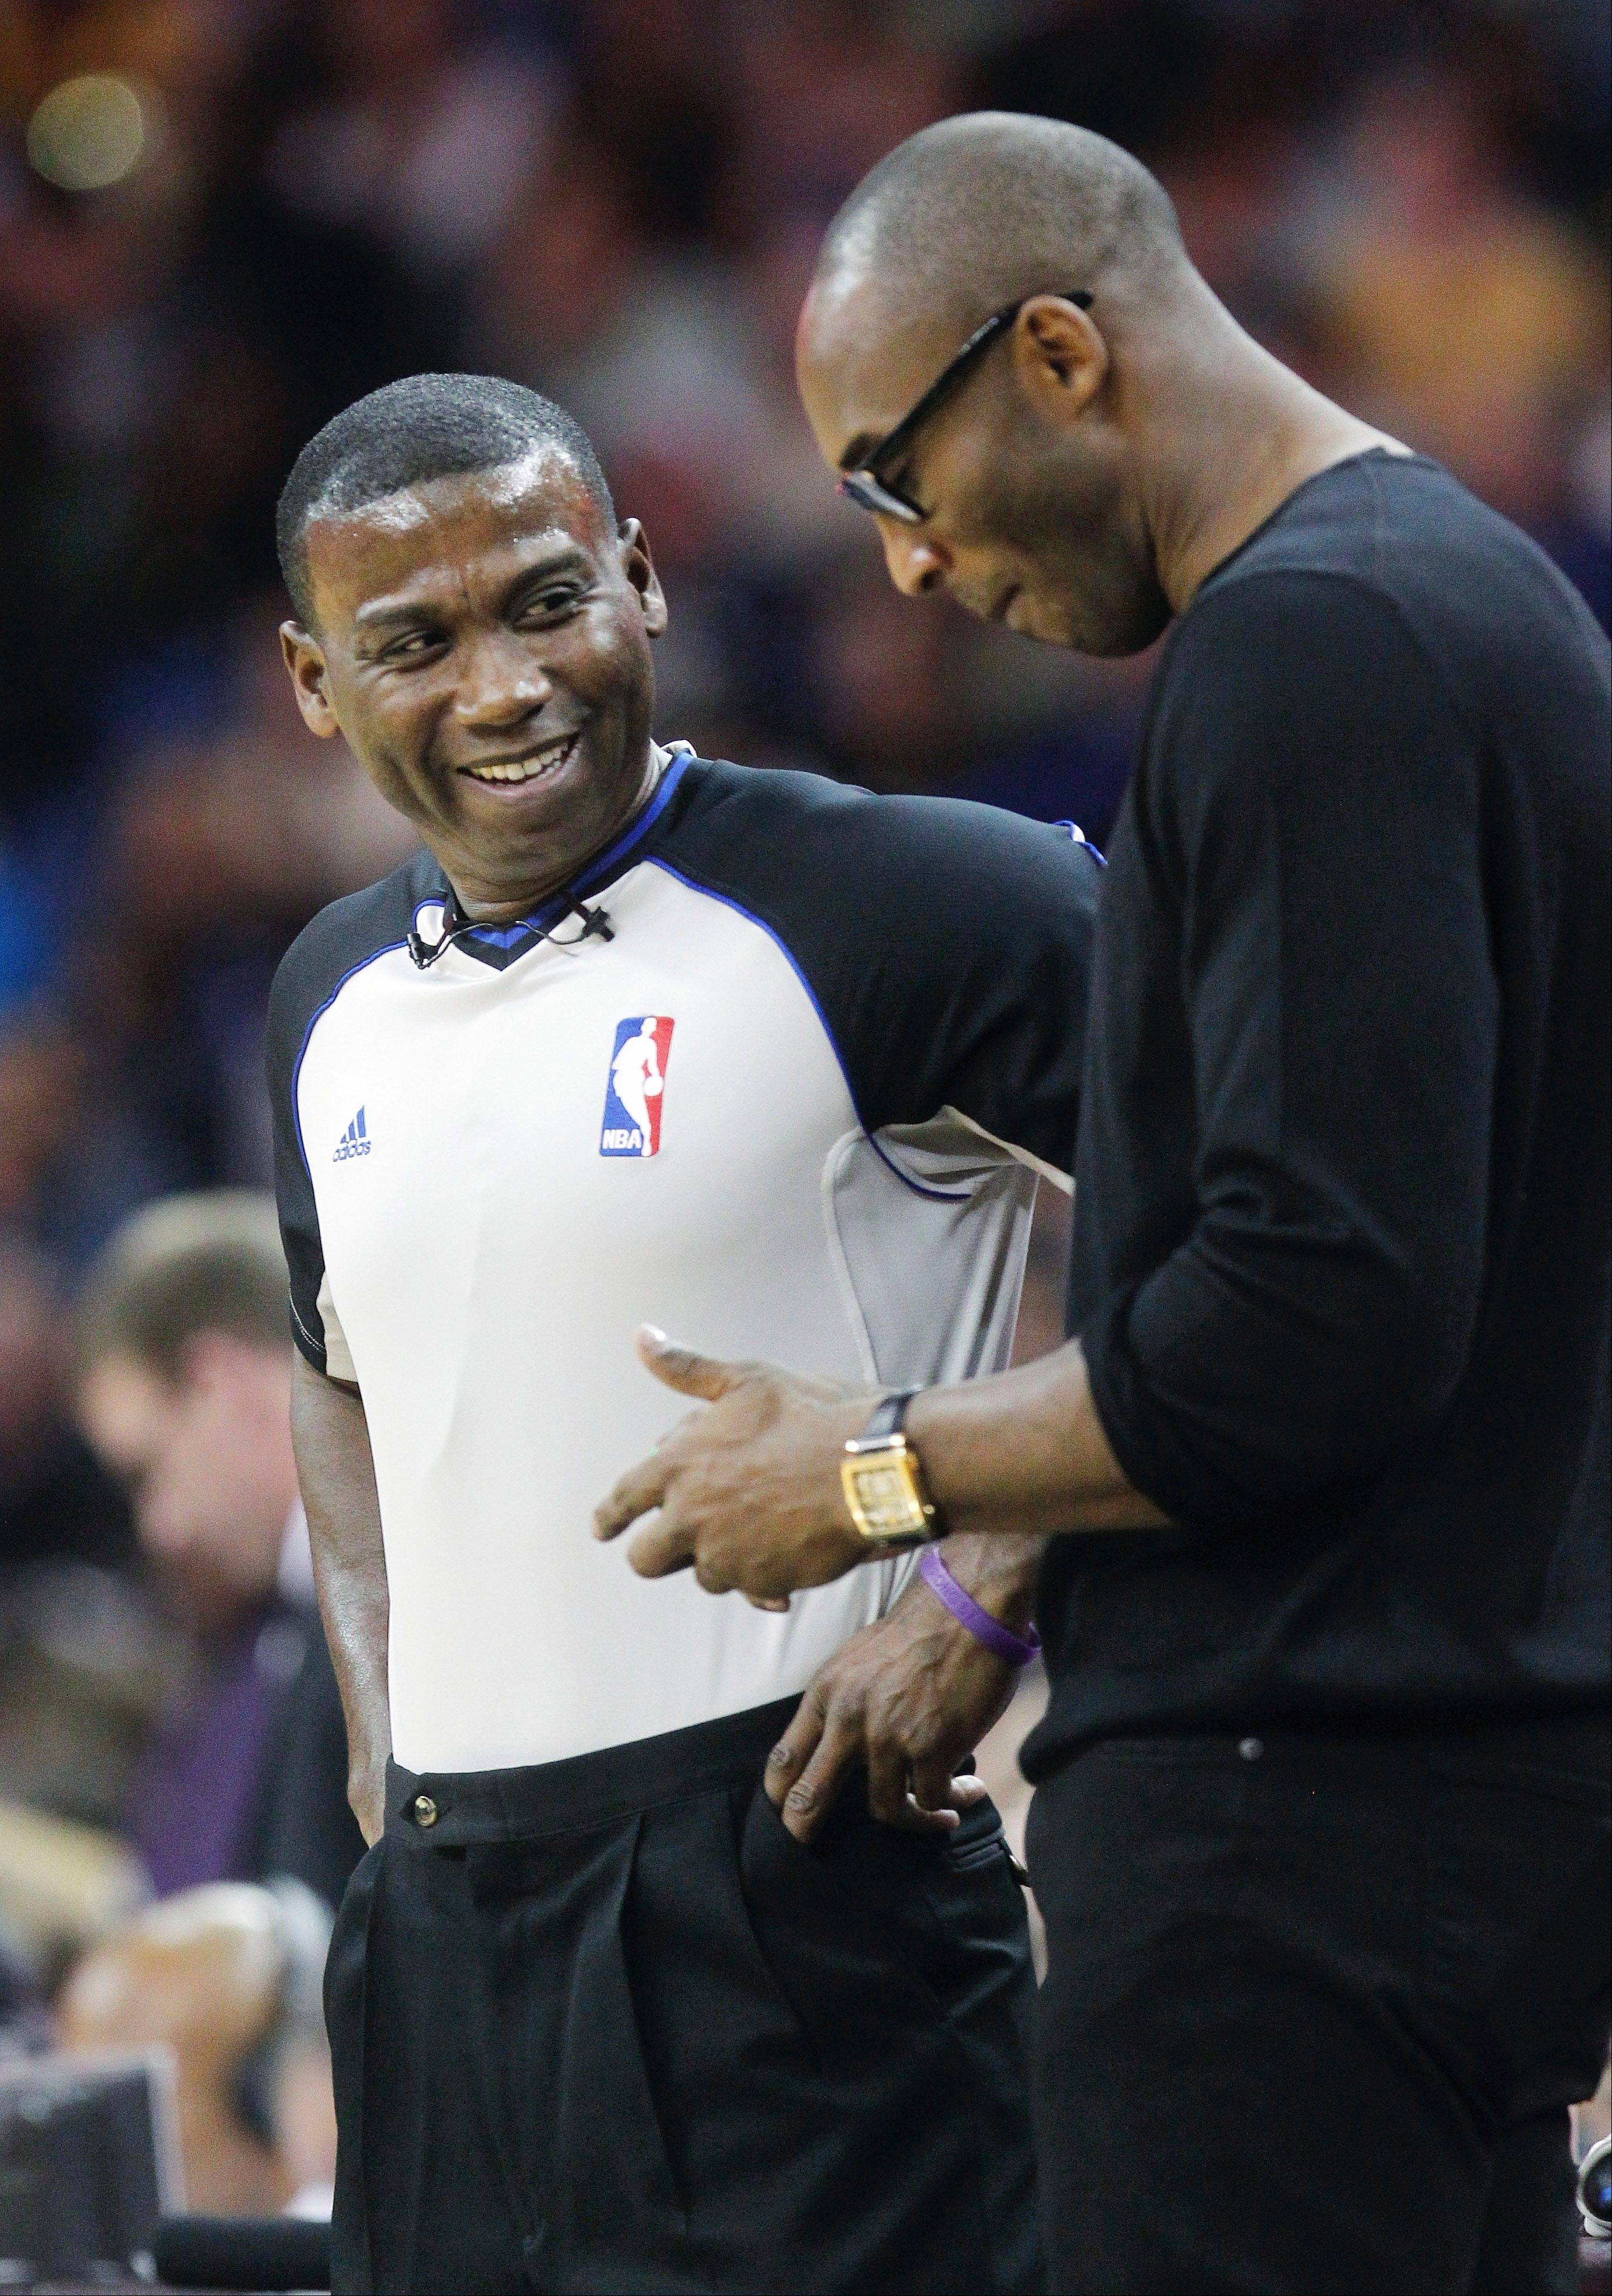 Los Angeles Lakers player Kobe Bryant, right, is hoping to return to action, possibly by the end of the month.